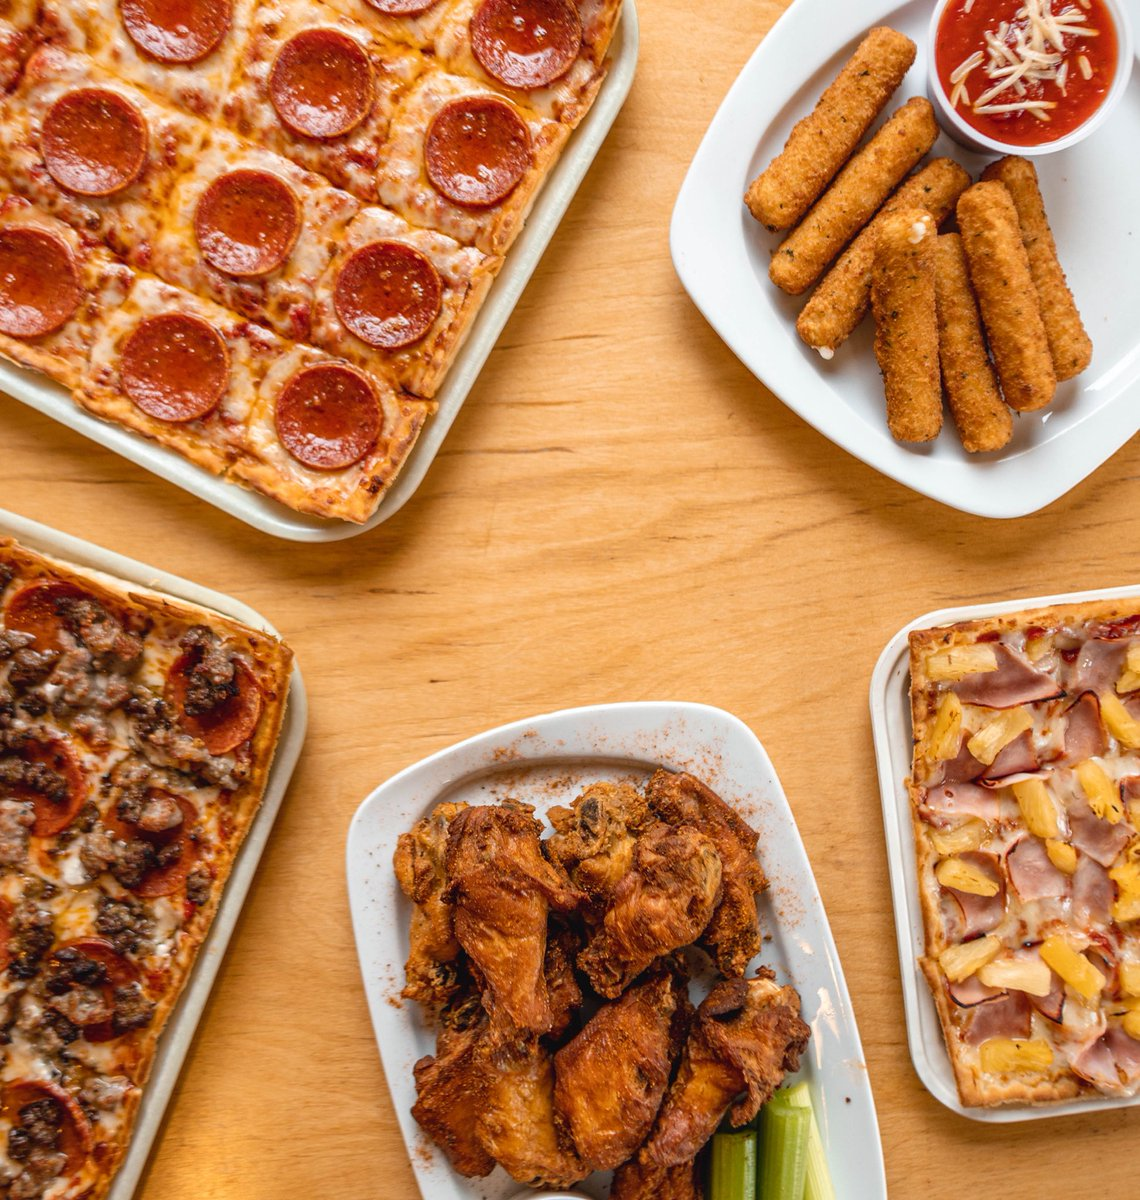 #FridayFeeling GIVEAWAY   We are GIVING AWAY (2)  $50 #LEDOPIZZA Gift Card!  RETWEET & FOLLOW  to be entered to win! (2 winners picked randomly at 10pm on 11/15/19) <br>http://pic.twitter.com/9qer6CqVUw